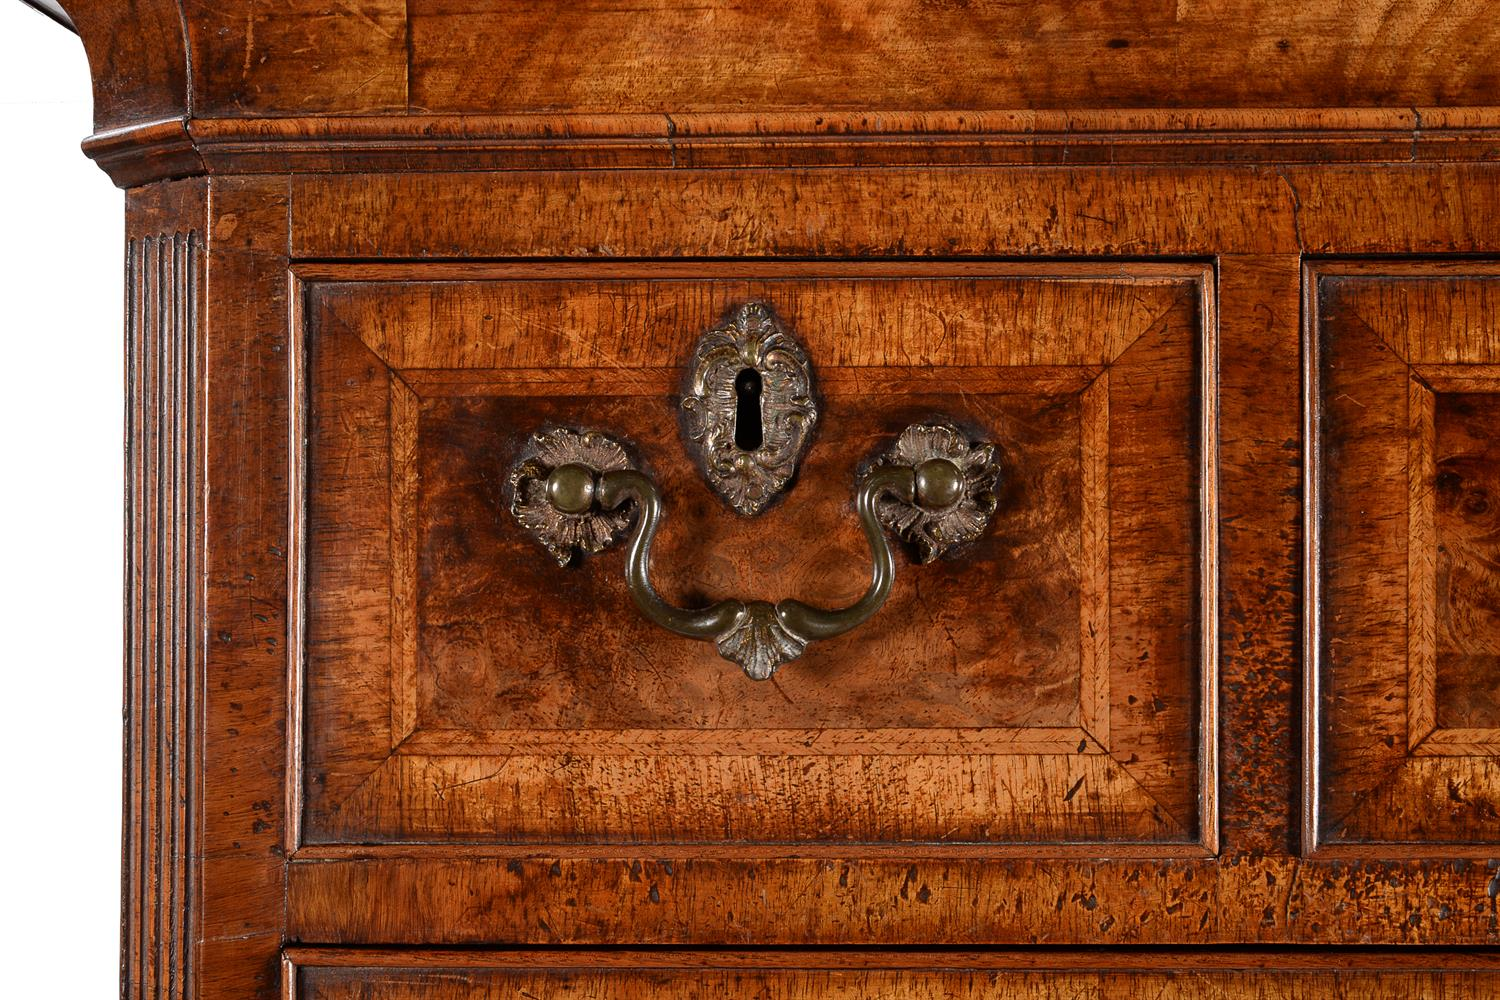 A GEORGE II BURR WALNUT AND FEATHER BANDED CHEST ON CHEST, CIRCA 1735 - Image 2 of 4